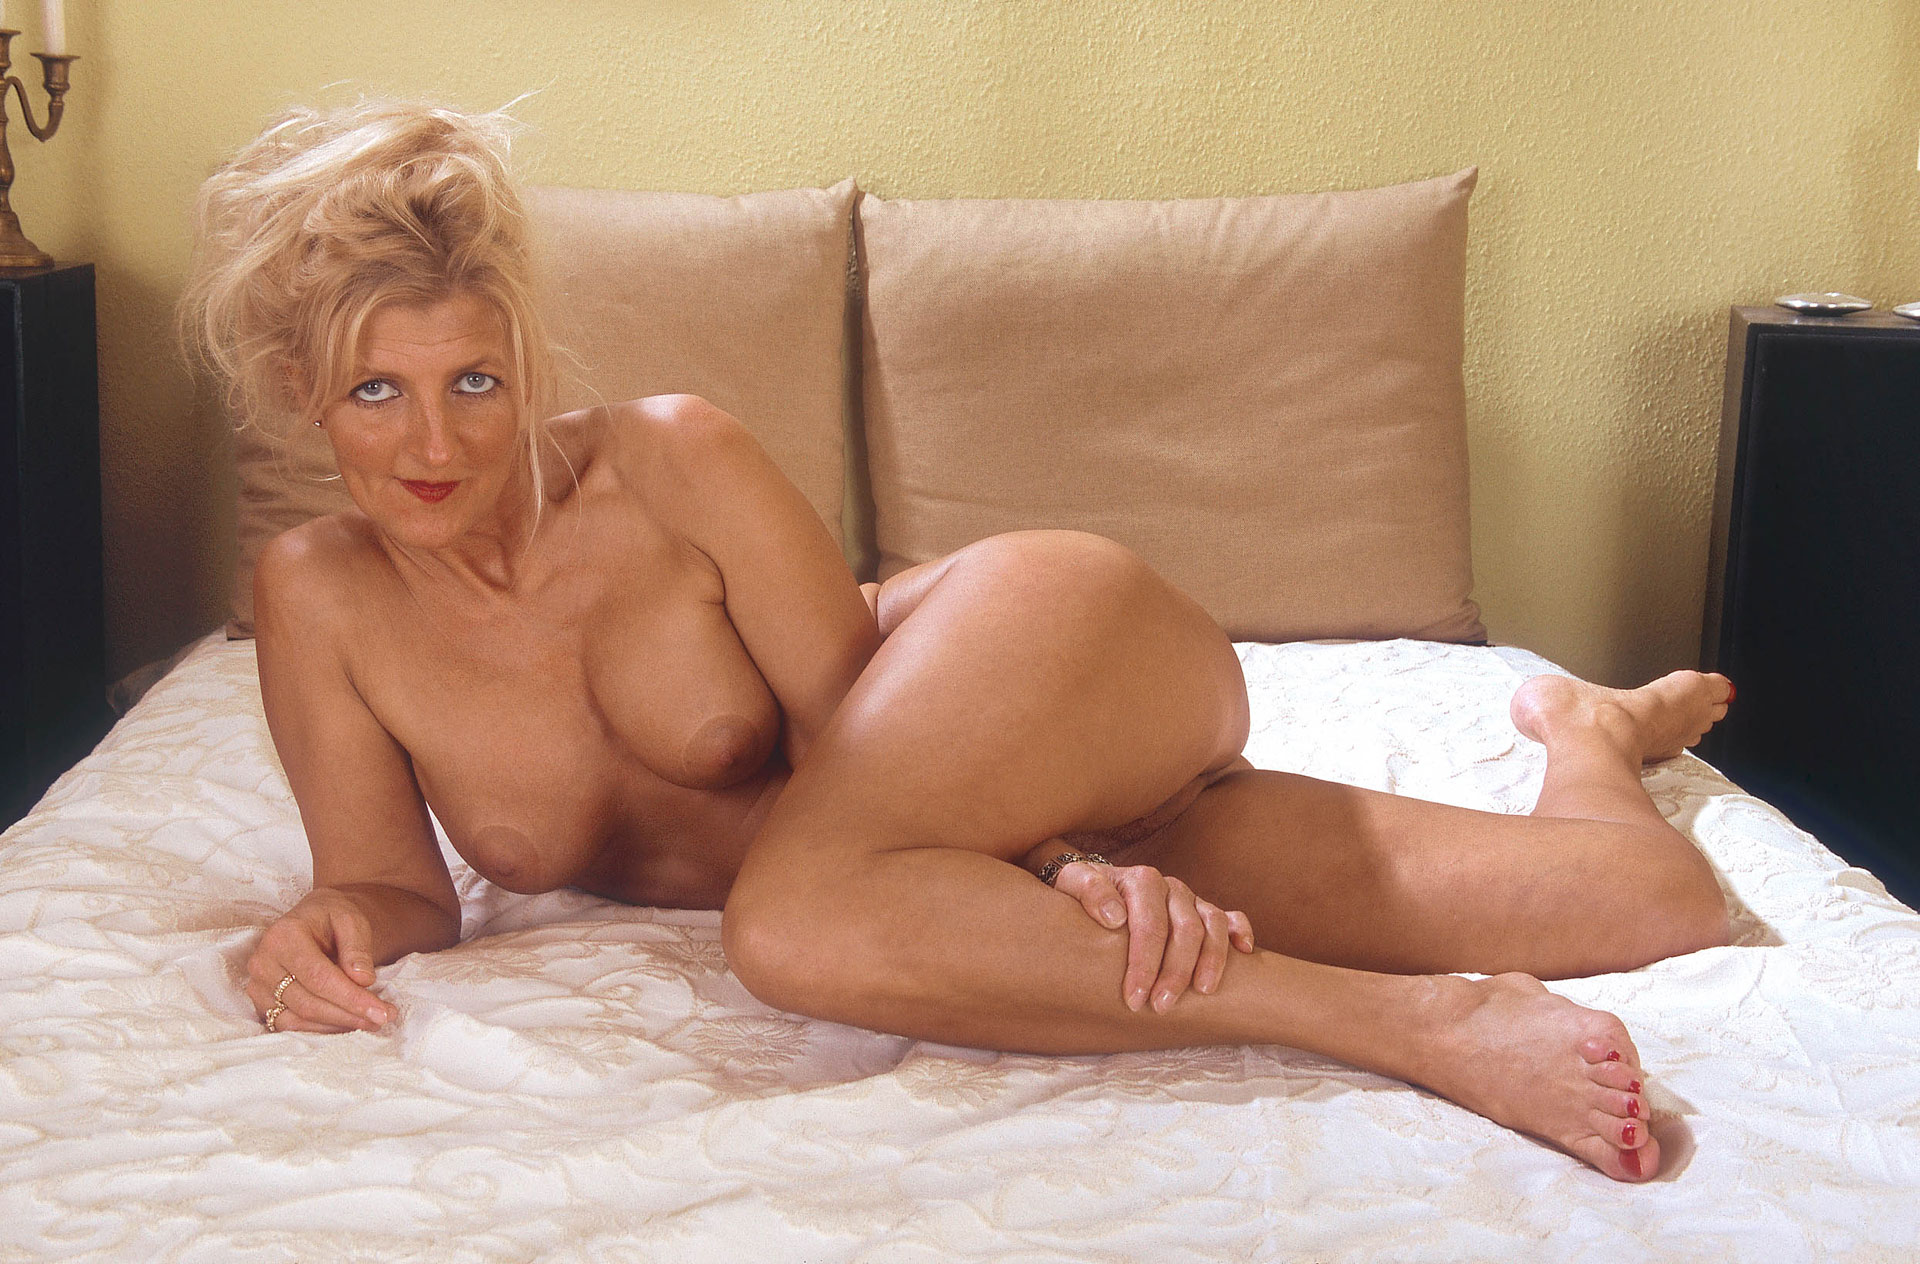 Hot mom catches and seduces not her son 7